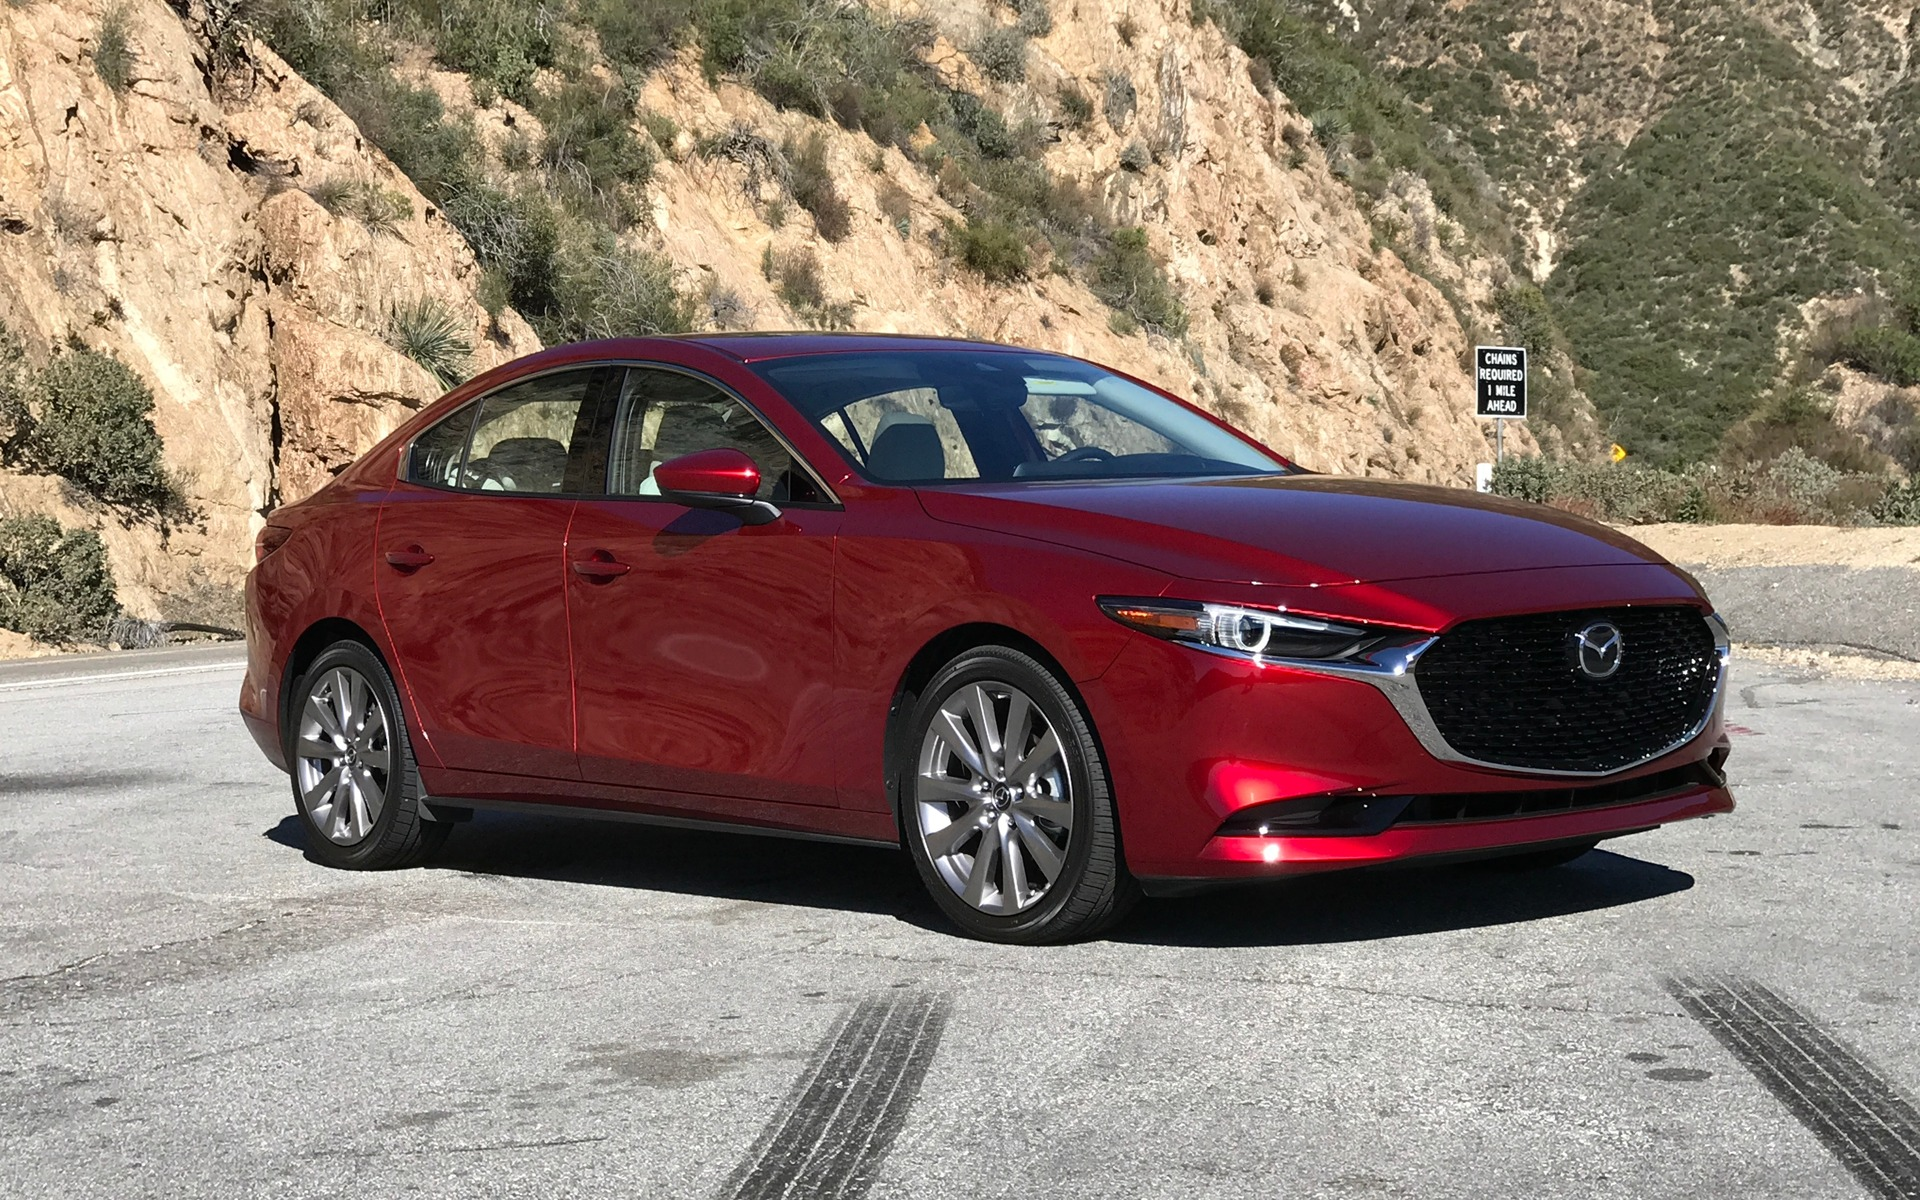 2019 Mazda3: Moving Upscale - The Car Guide